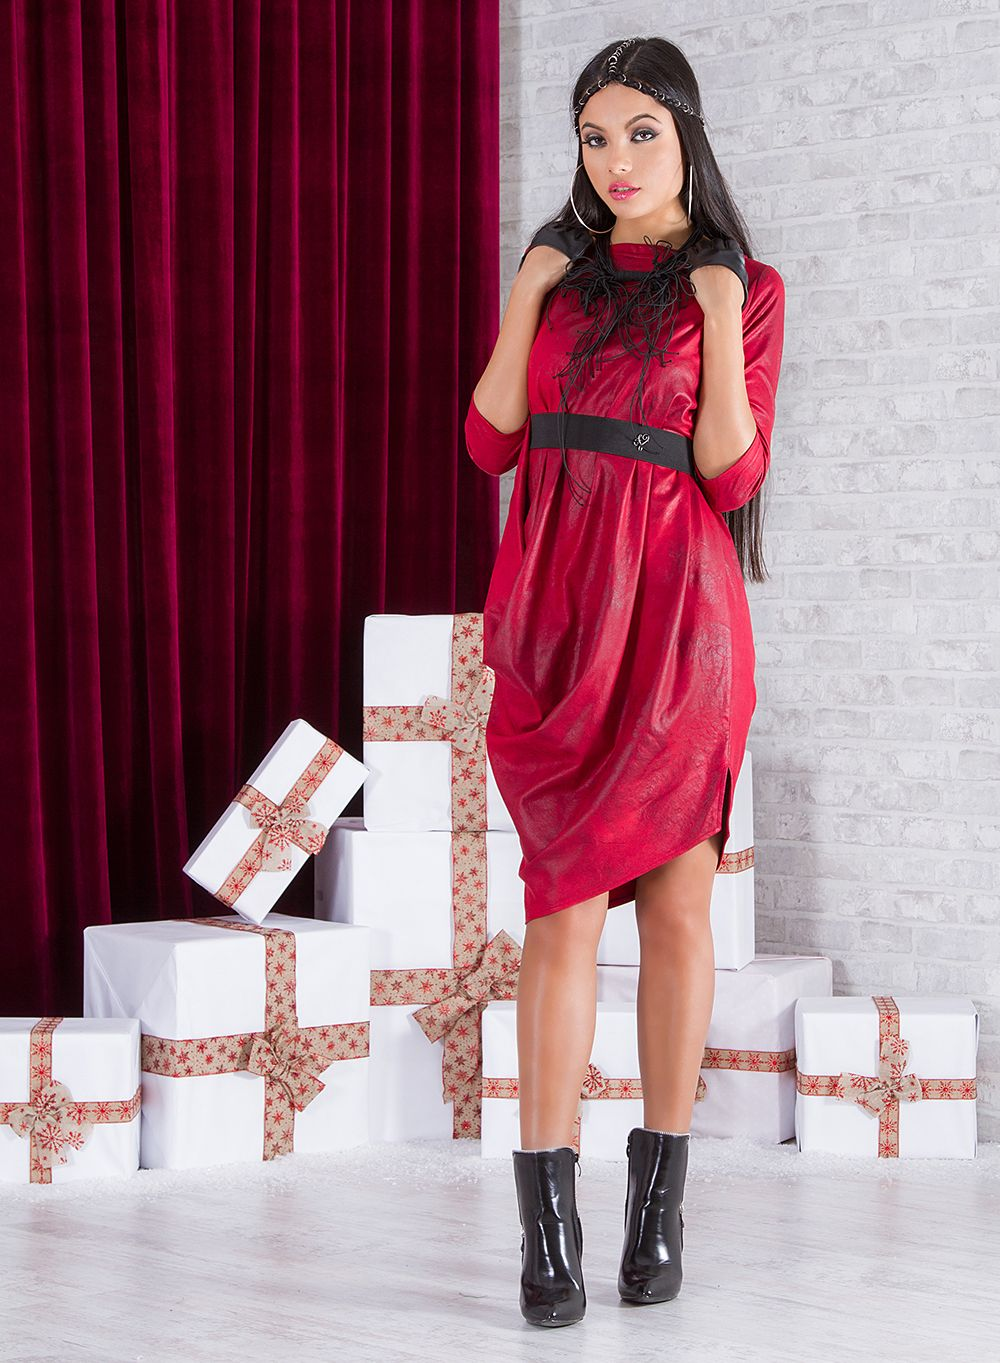 7a28353f9a1 Faux Leather Dress/ Red Leather Dress/ Asymmetrical Dress ...